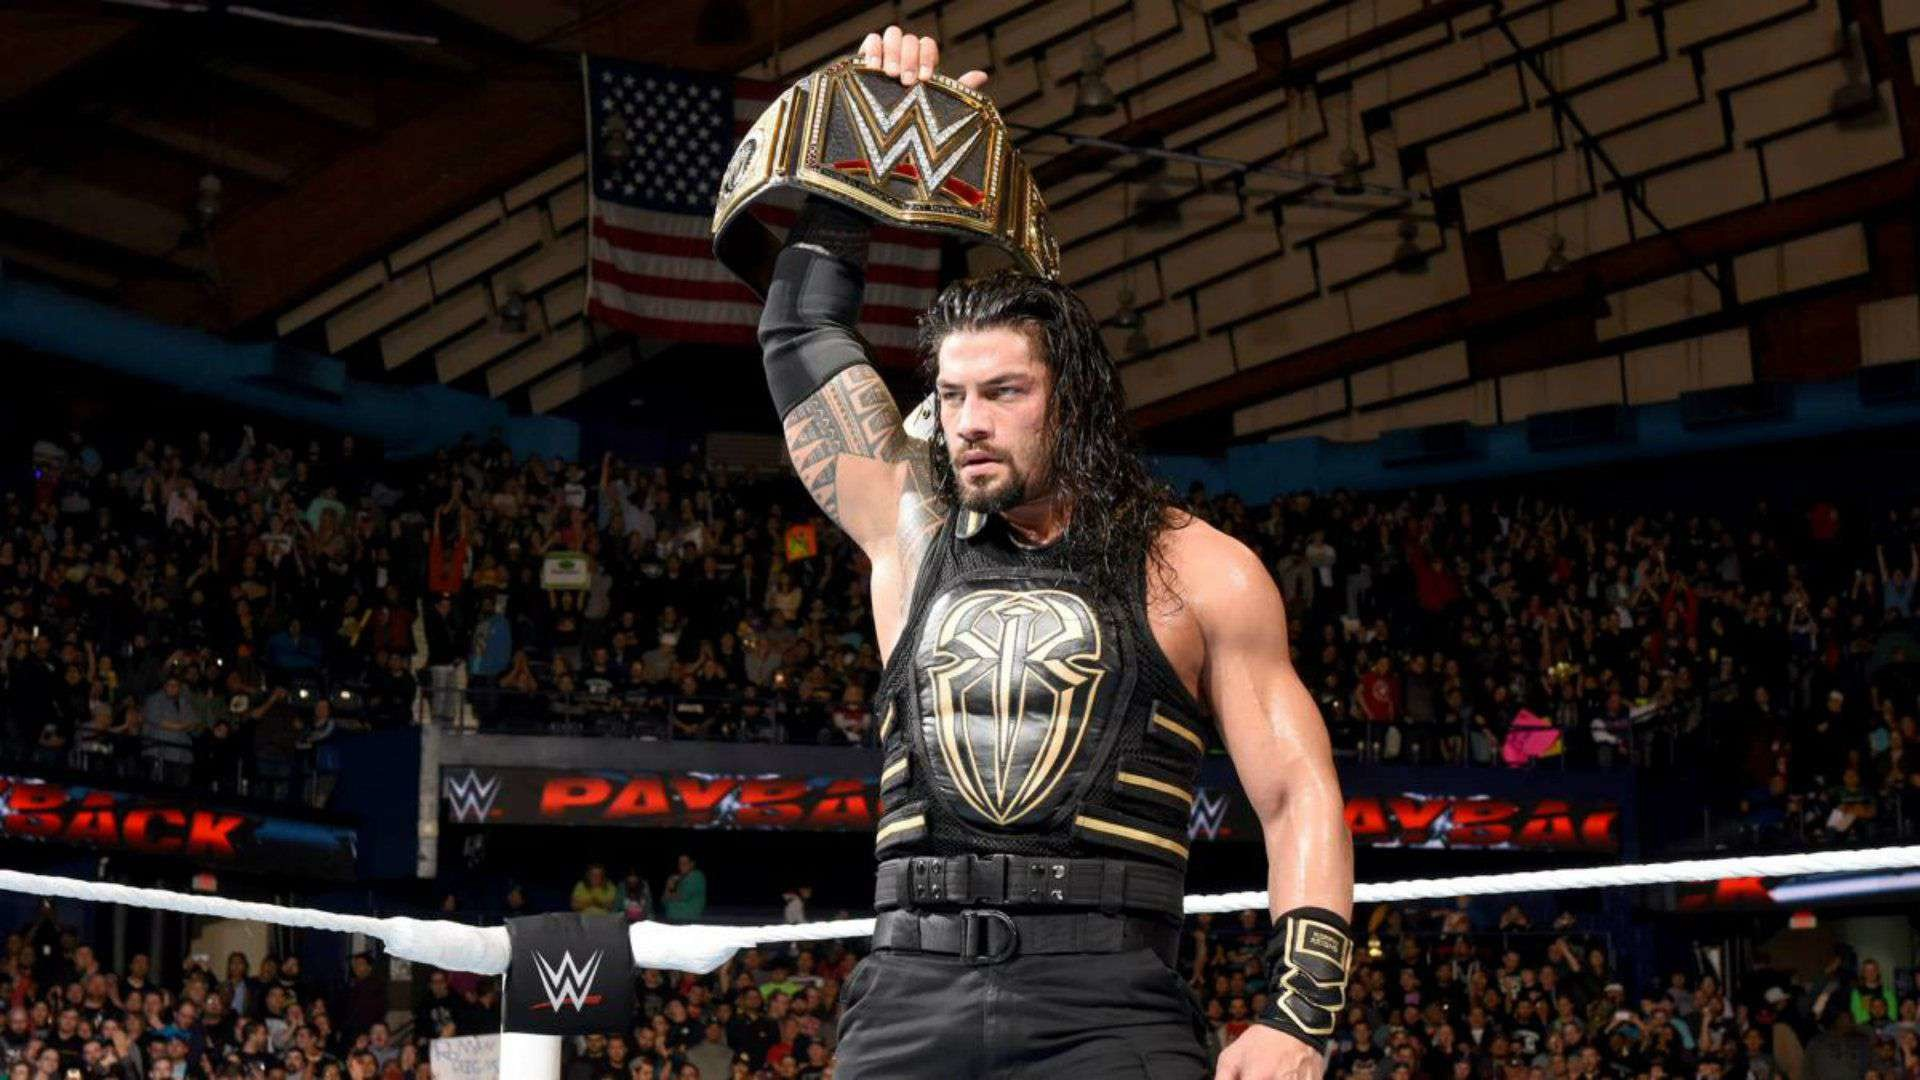 Res: 1920x1080, WWE Roman Reigns Hd Wallpapers for iphone